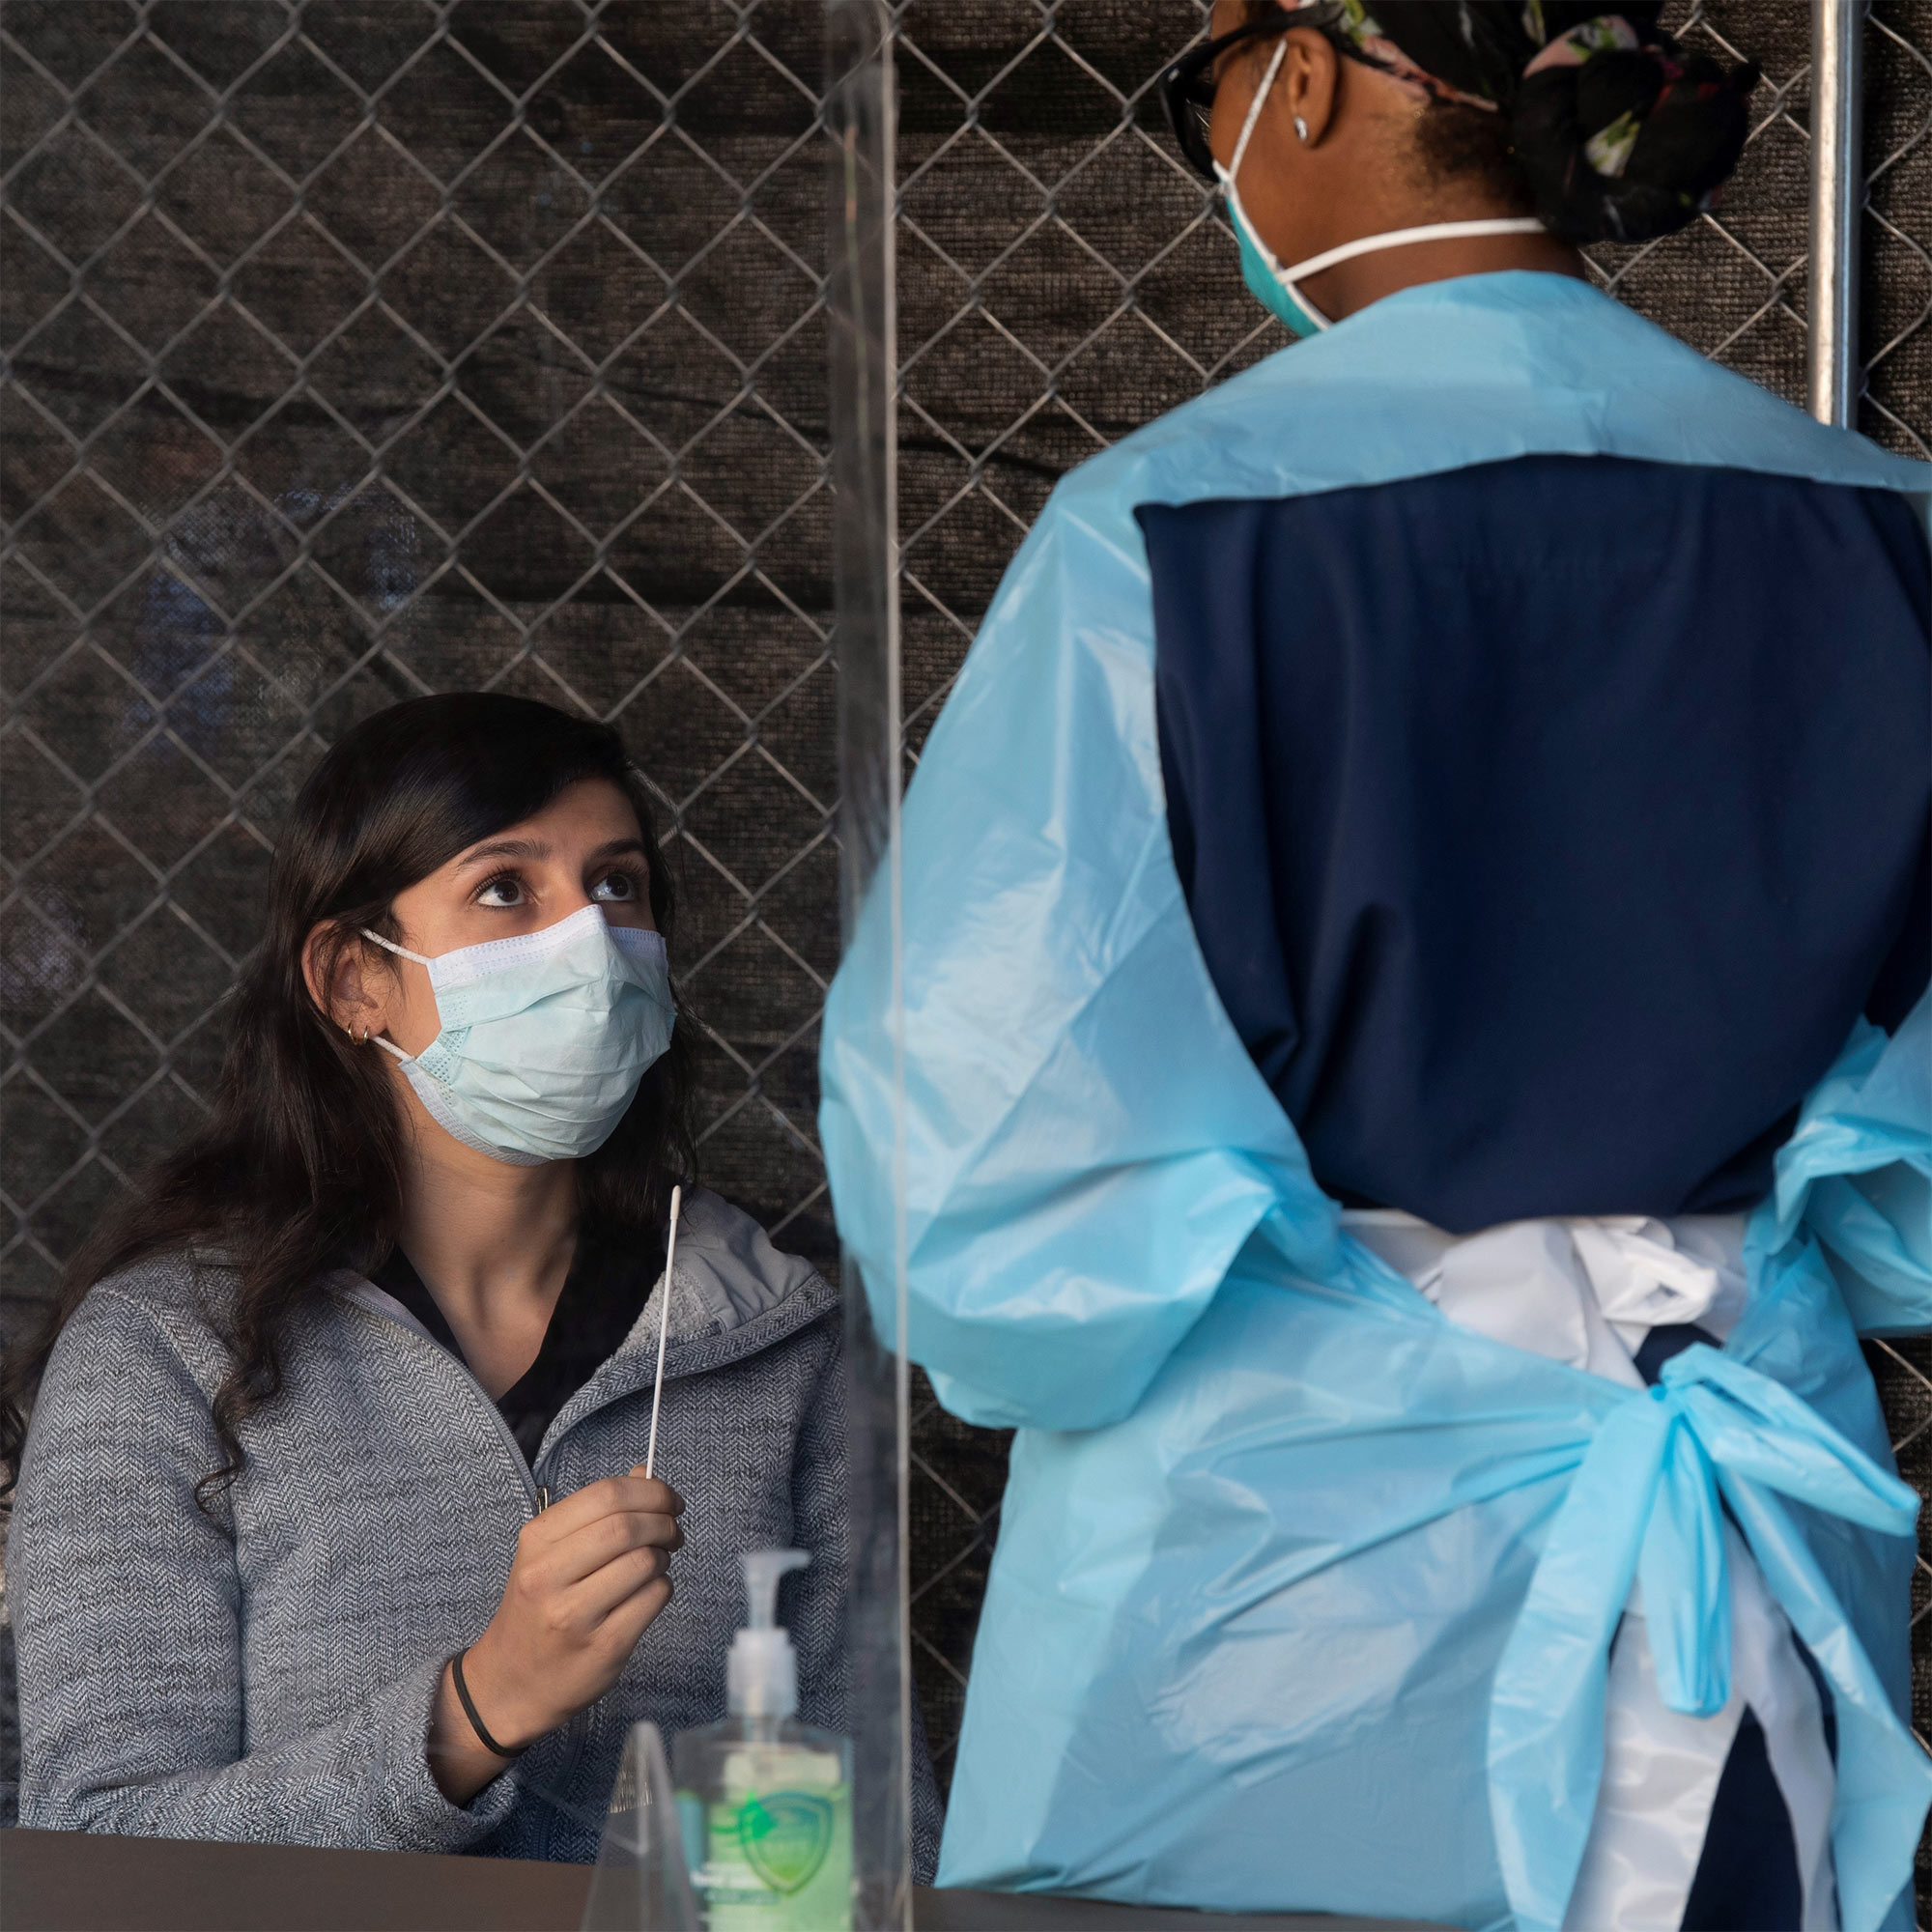 A woman holds a nasal swab as part of a COVID-19 test while a medical professional, (wearing personal protective equipment) advises her on to use the swab to conduct the test.